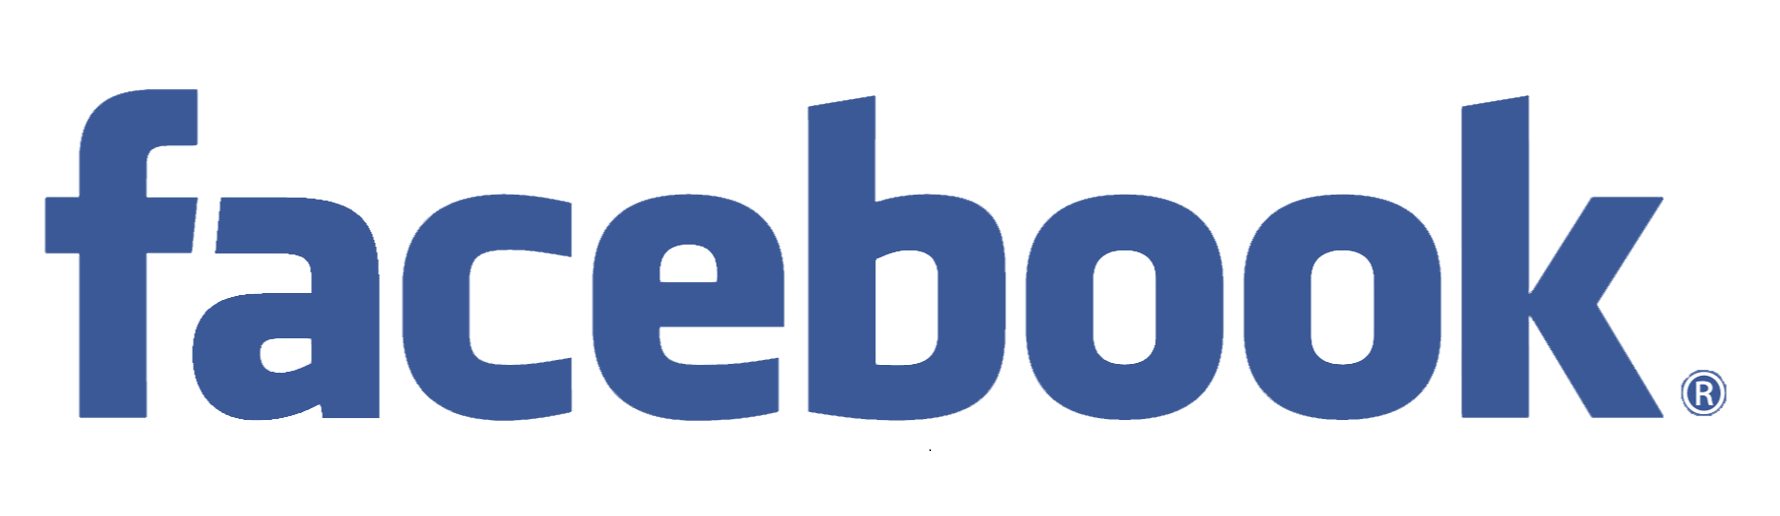 Facebook text logo transparent #38355.